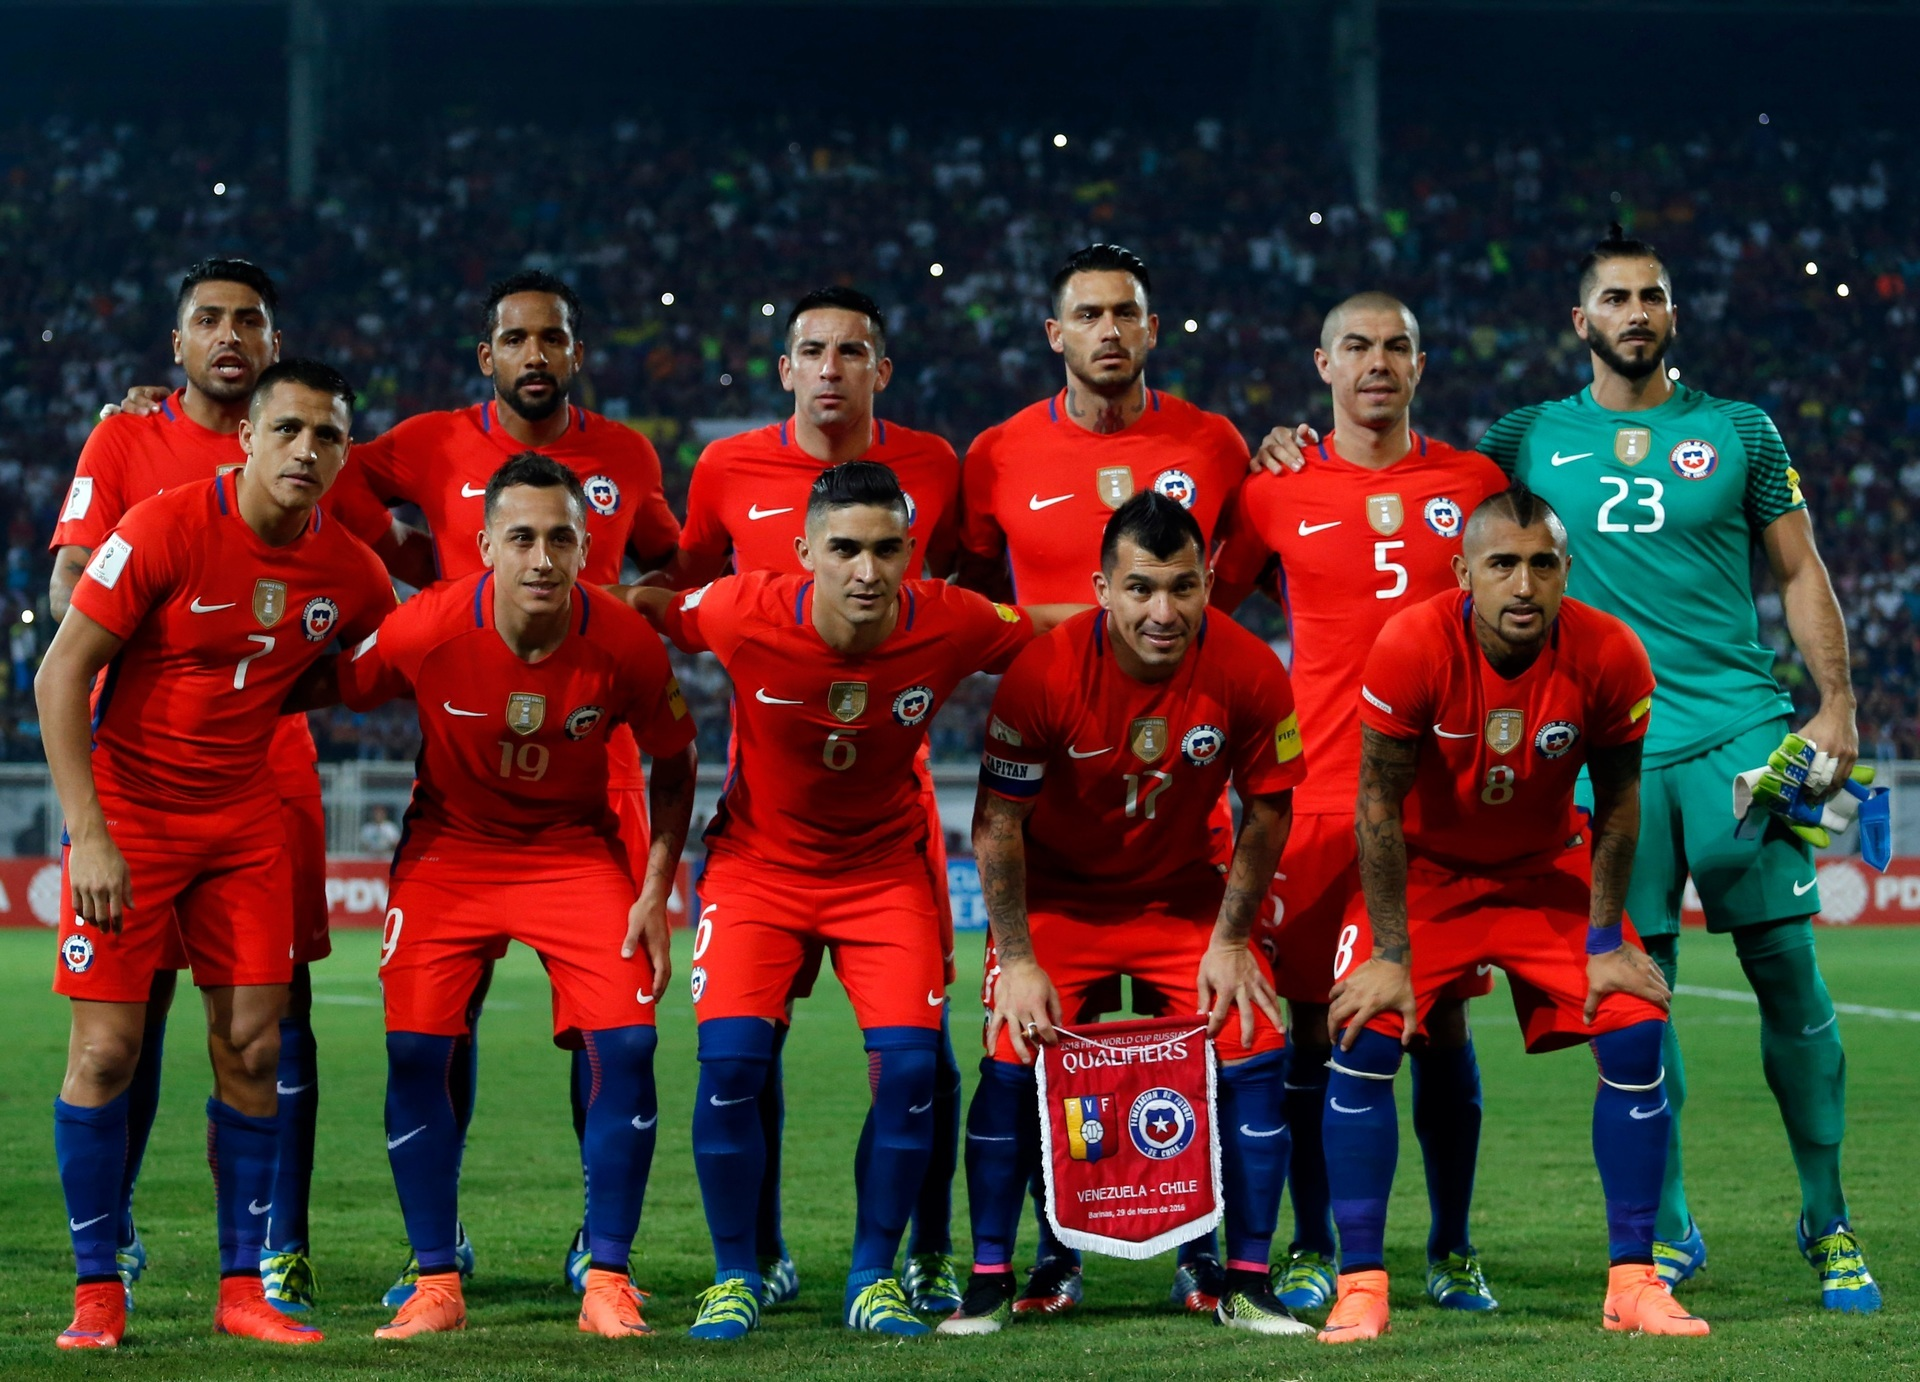 Chile-2016-NIKE-home-kit-red-red-blue-line-up.jpg